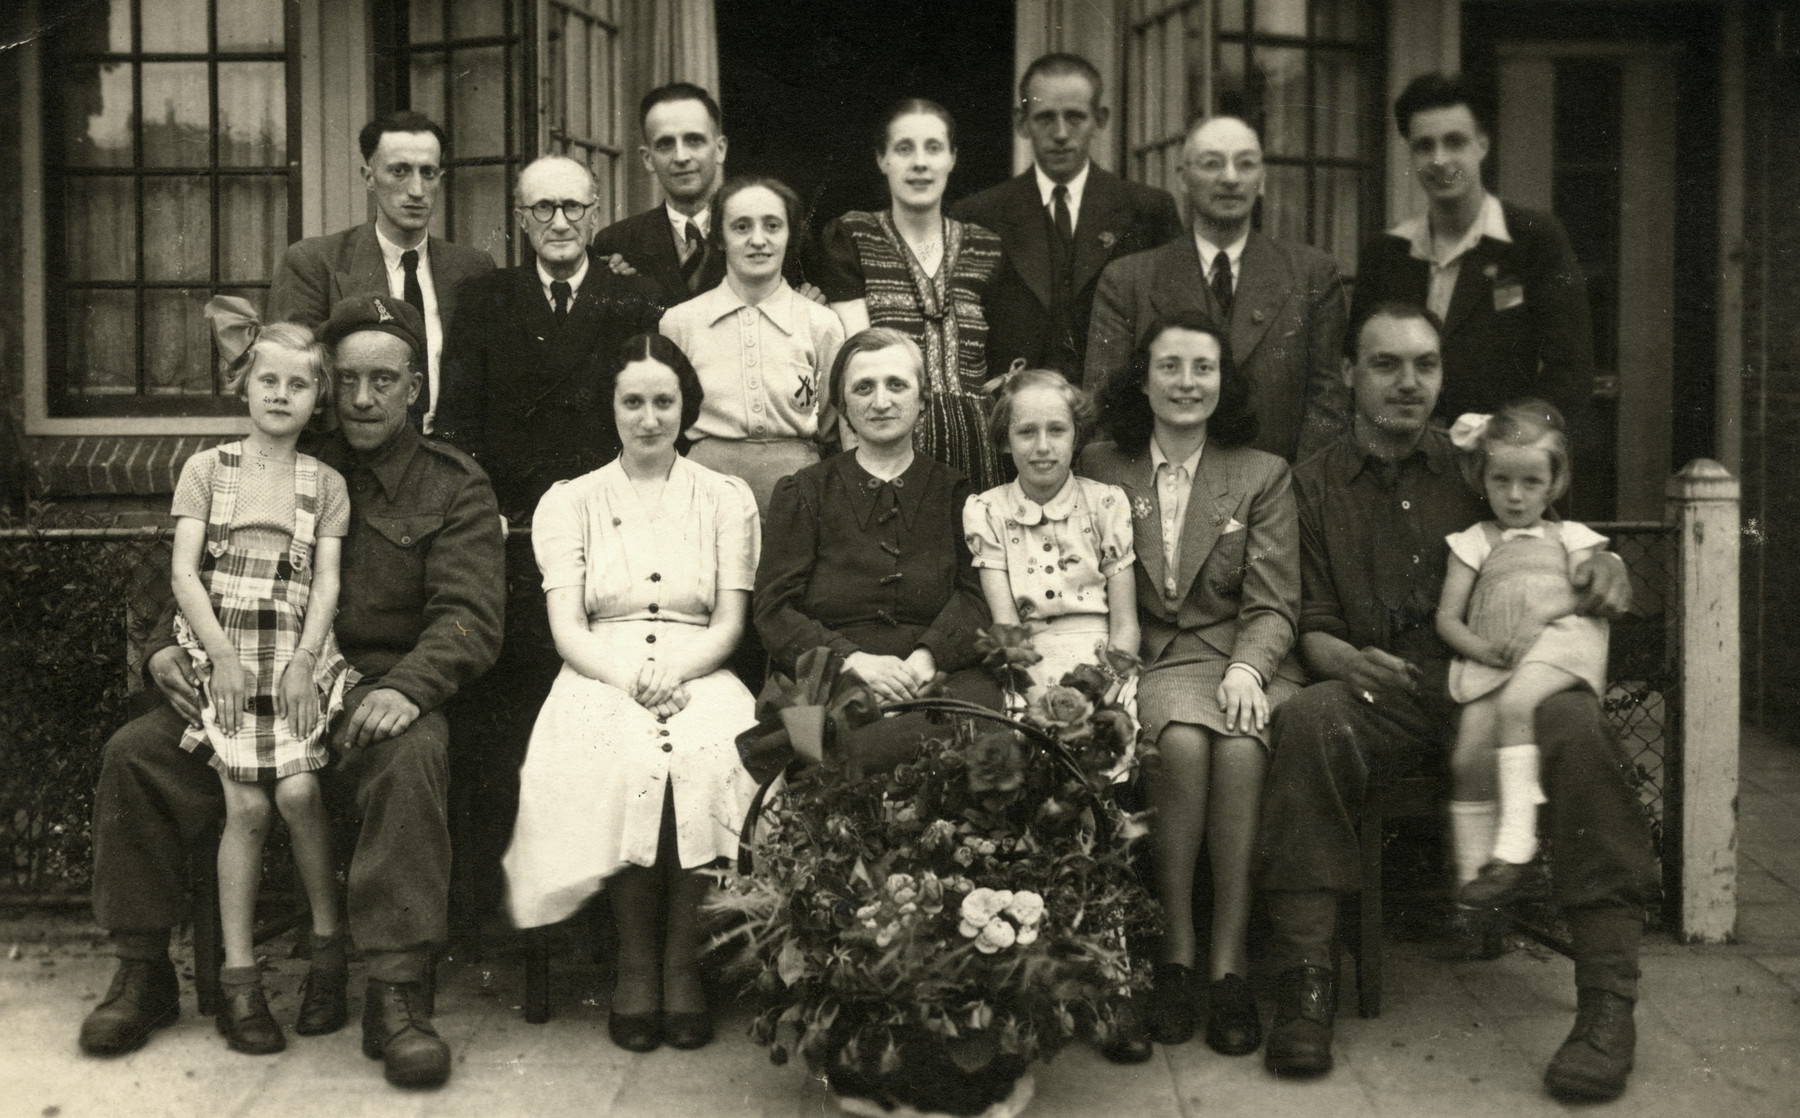 Ellis Cohen-Paraira poses with her rescuers, the Kooistra family, shortly after liberation.   Seated left to right are Annika Kooistra sitting on the lap of a British soldier, Lien Gans, Mrs. Gans, Rommy Kooistra, Ellis Cohen-Paraira, Henry (a British Jewish soldier) and Riki Kooistra.  Standing are Hank Gans, Mr. Gans, David Cohen-Paraira, Mien Cohen Schpektor, Wopke Kooistra, Heilje Kooistra, Mr. Pam, Bram Cohen-Paraira.  The Gans family also hid at the Kooistra home.